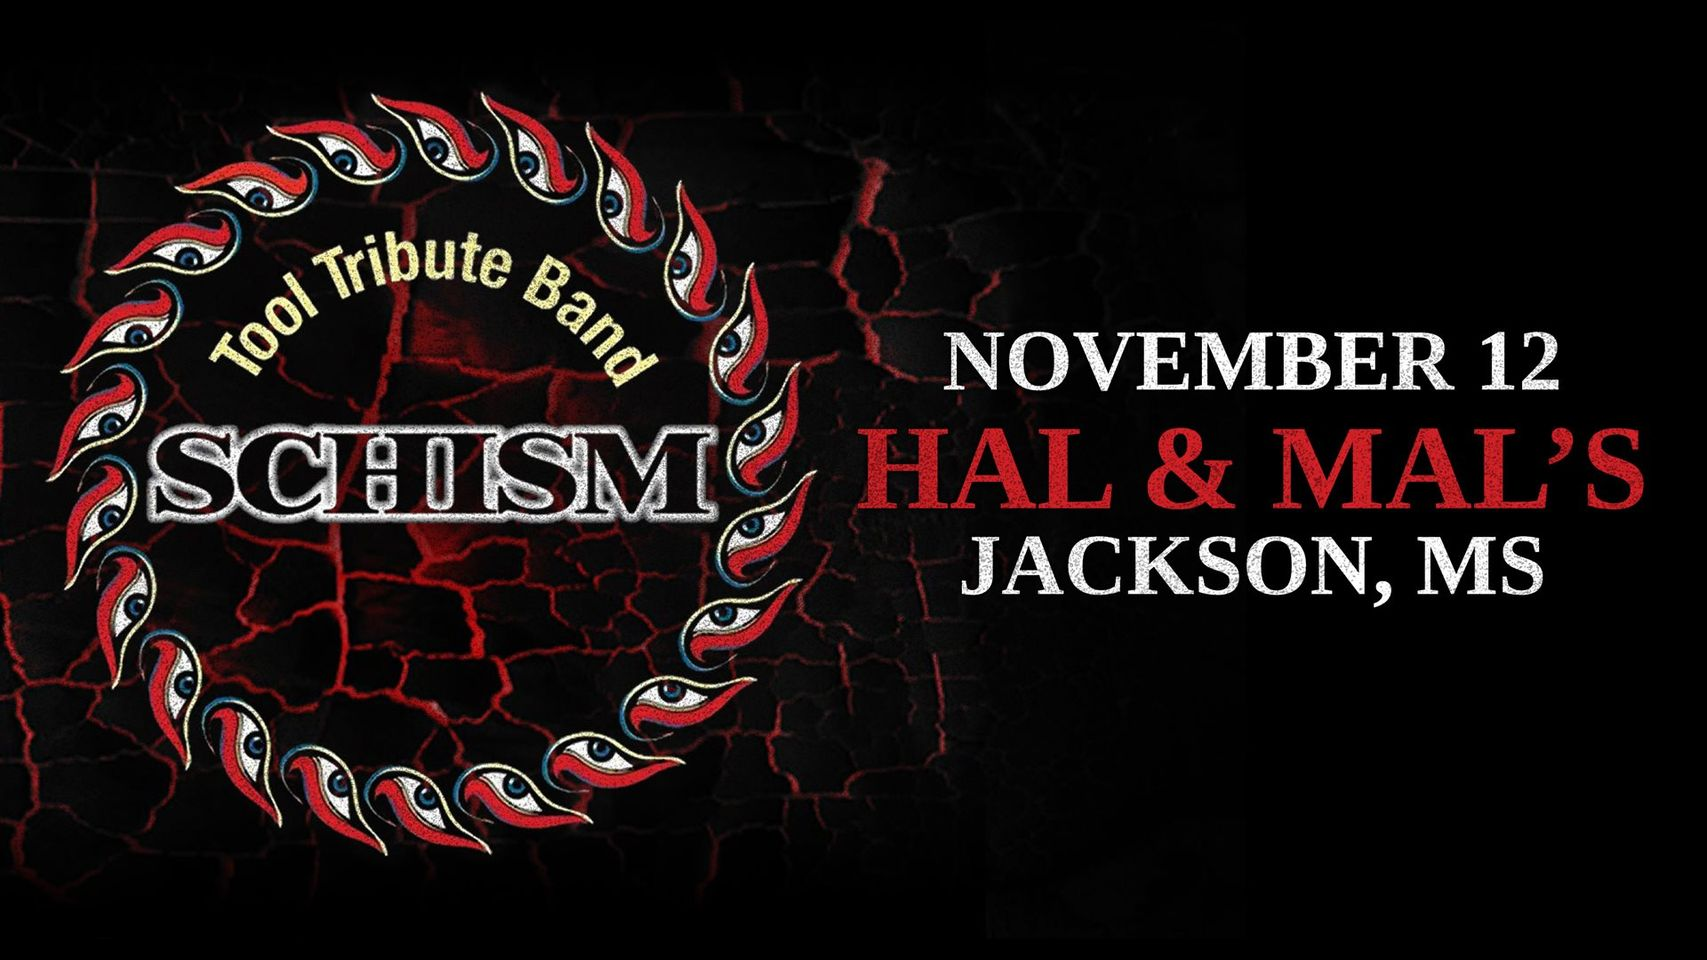 Schism (Tool Tribute) at Hal & Mal's